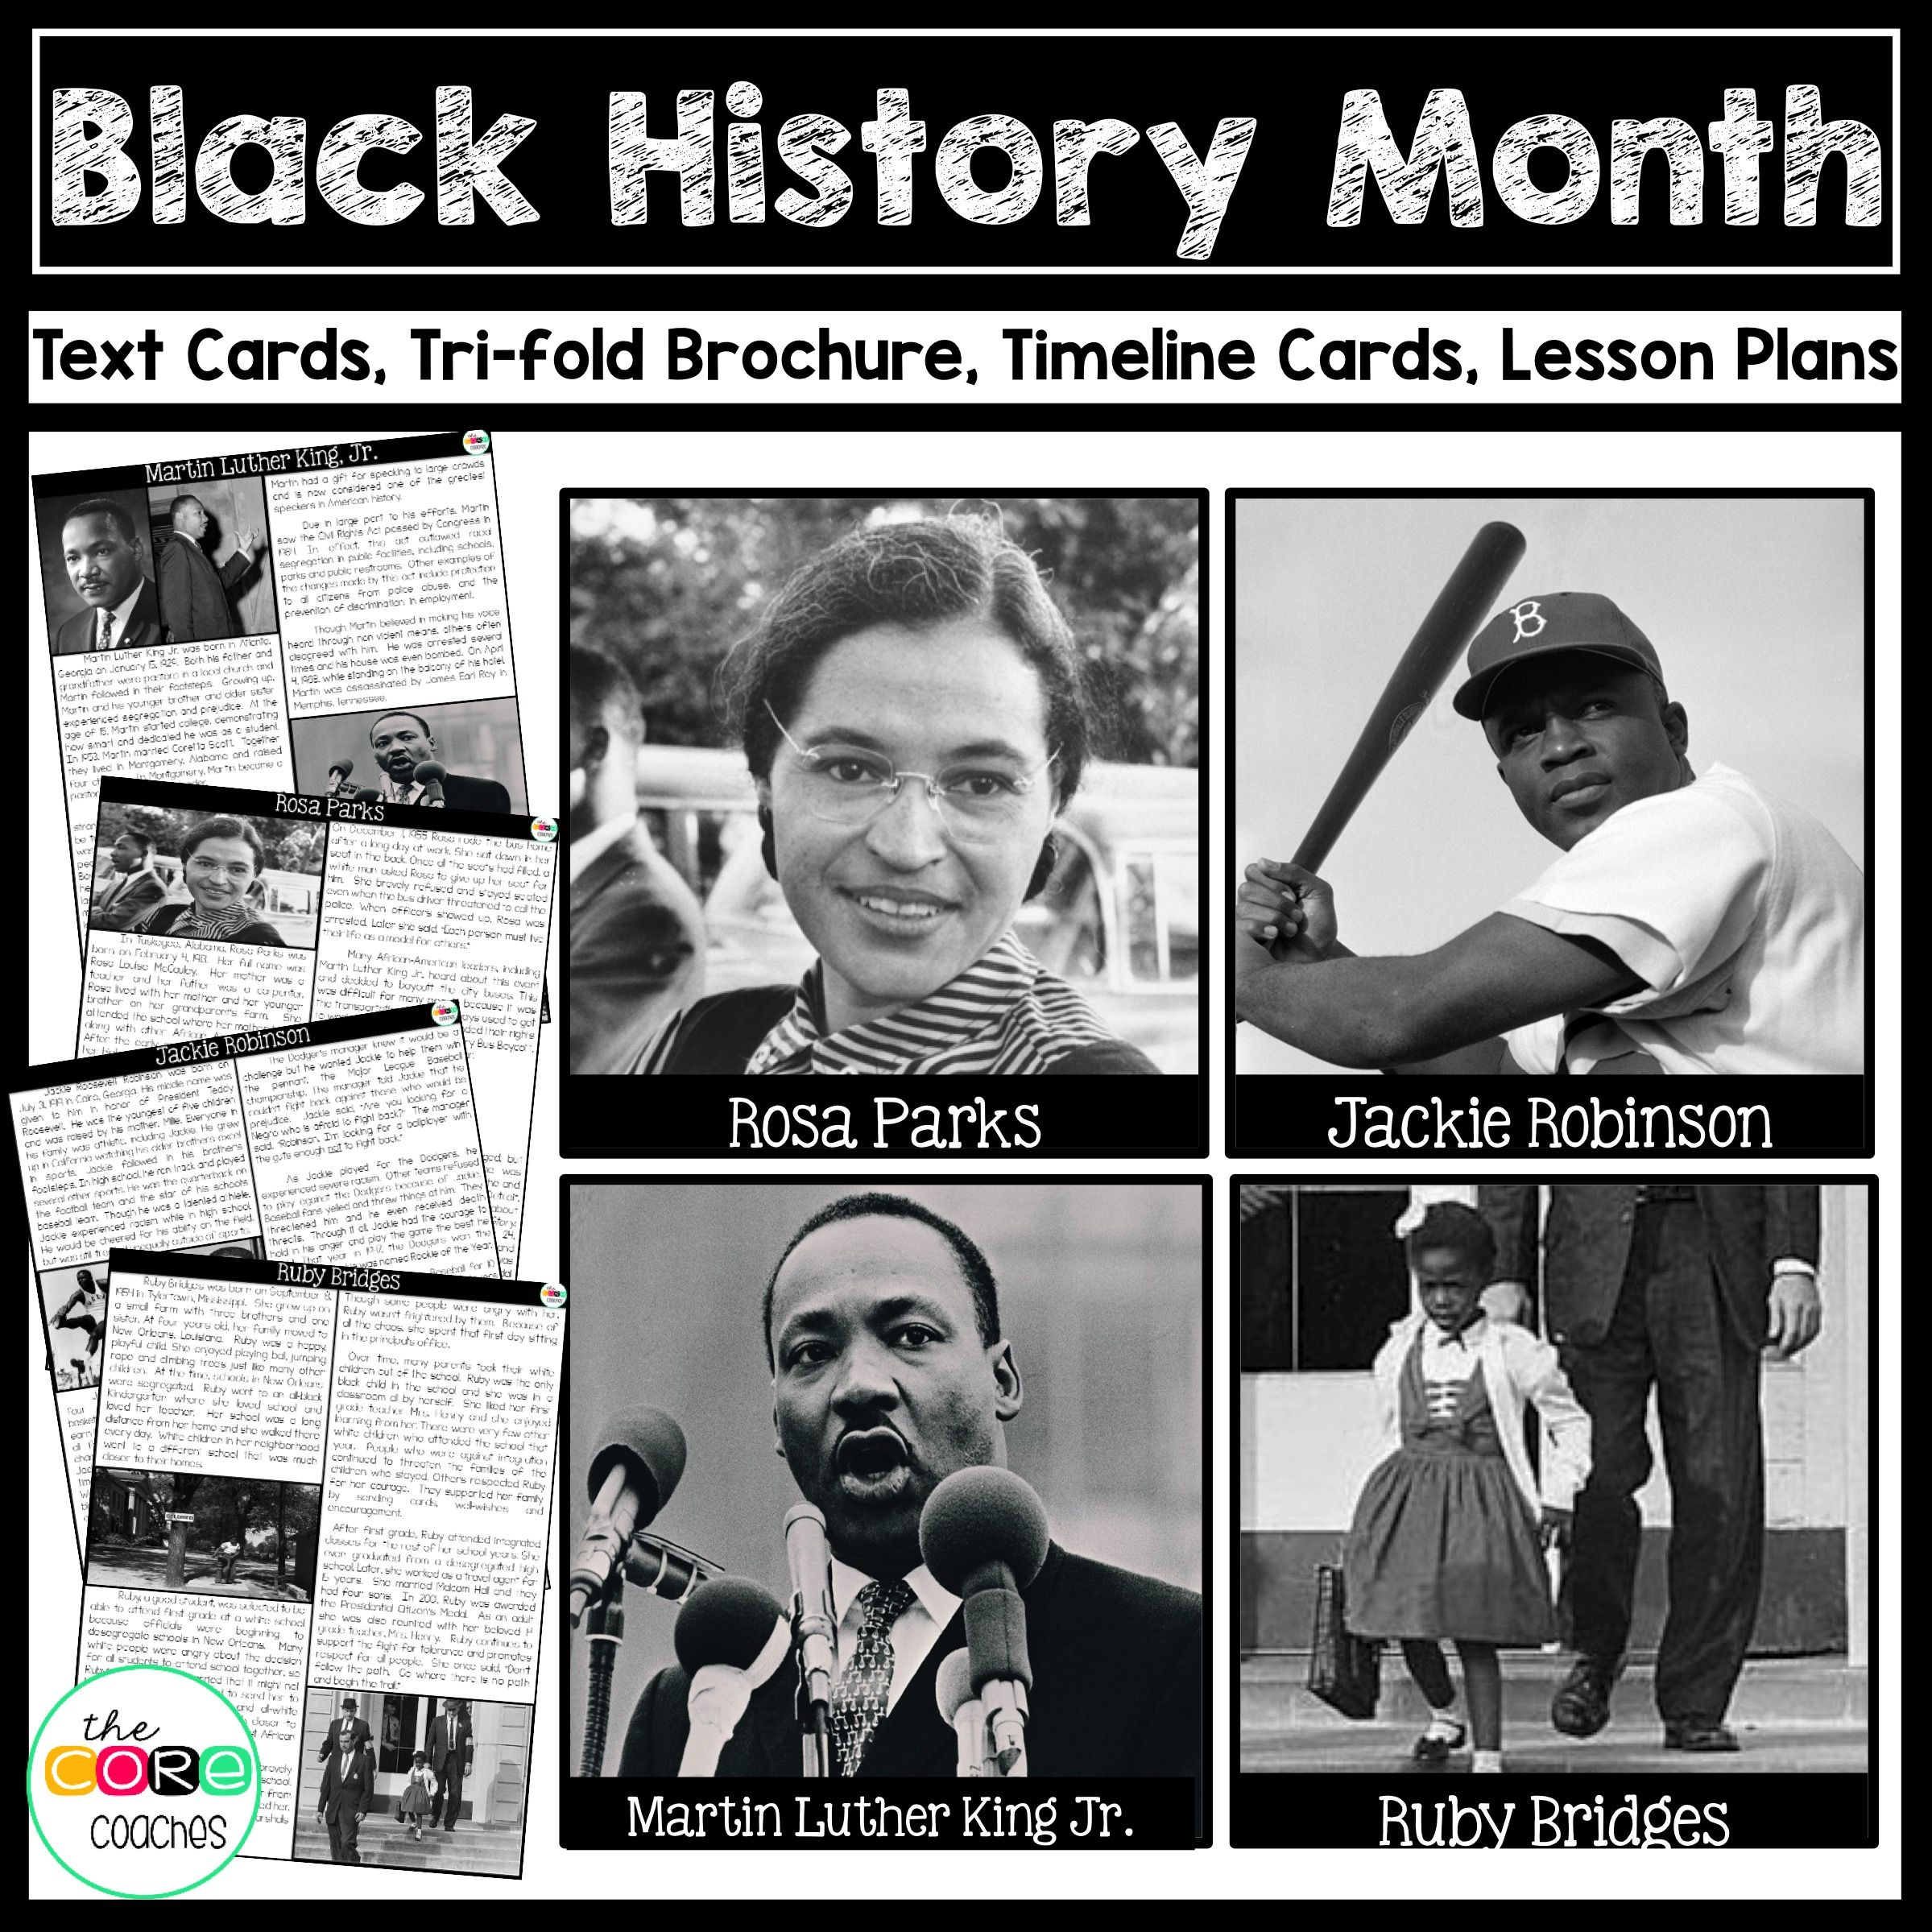 Black History Martin Luther King Jr Ruby Bridges Rosa Parks Jackie Robinson